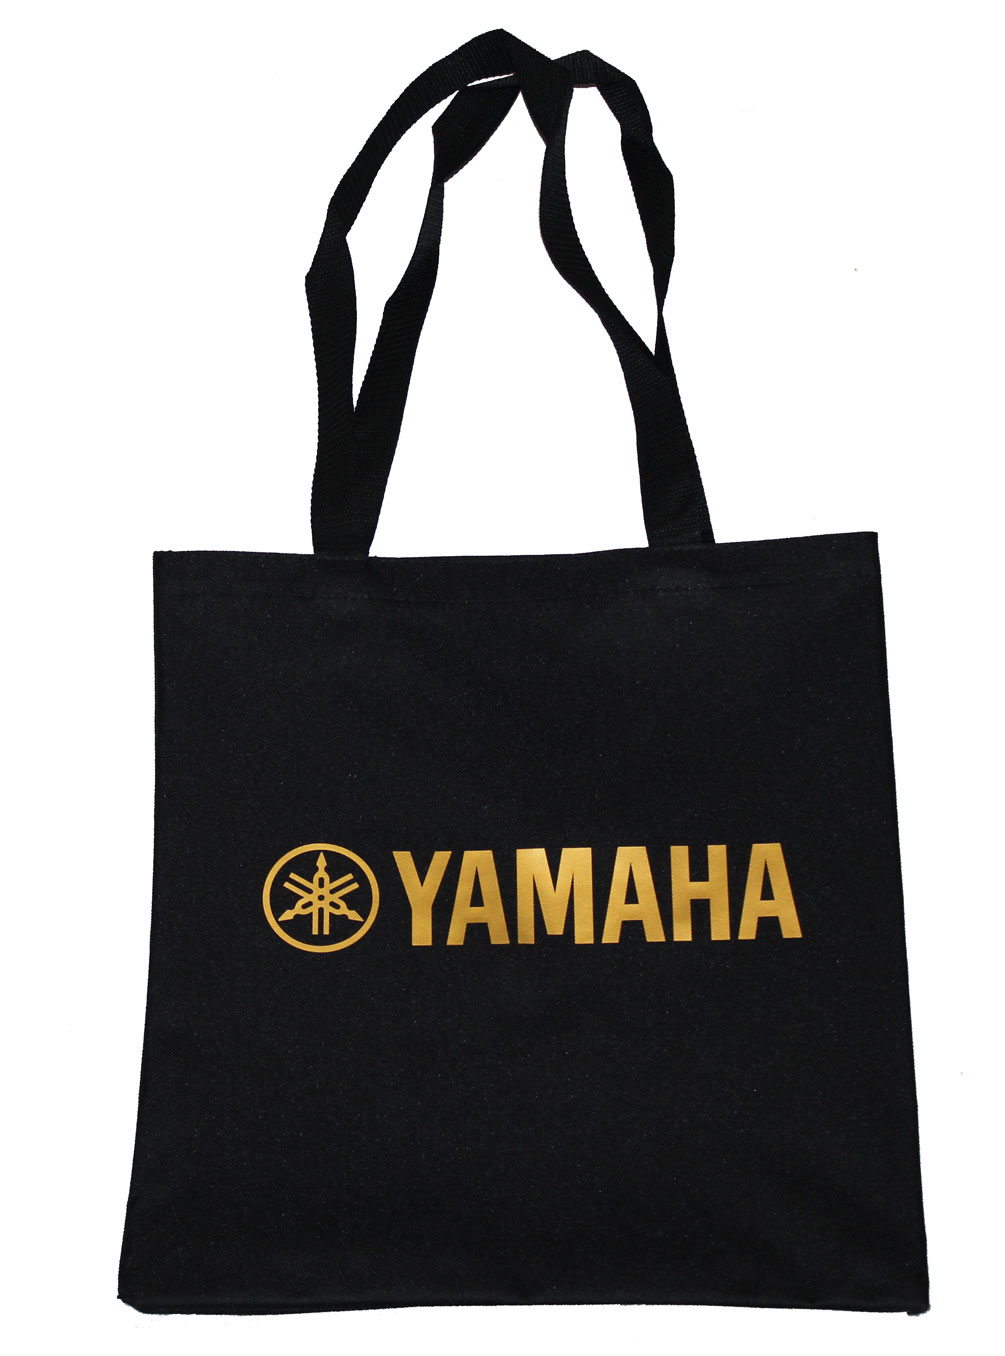 yamaha sheet music bag